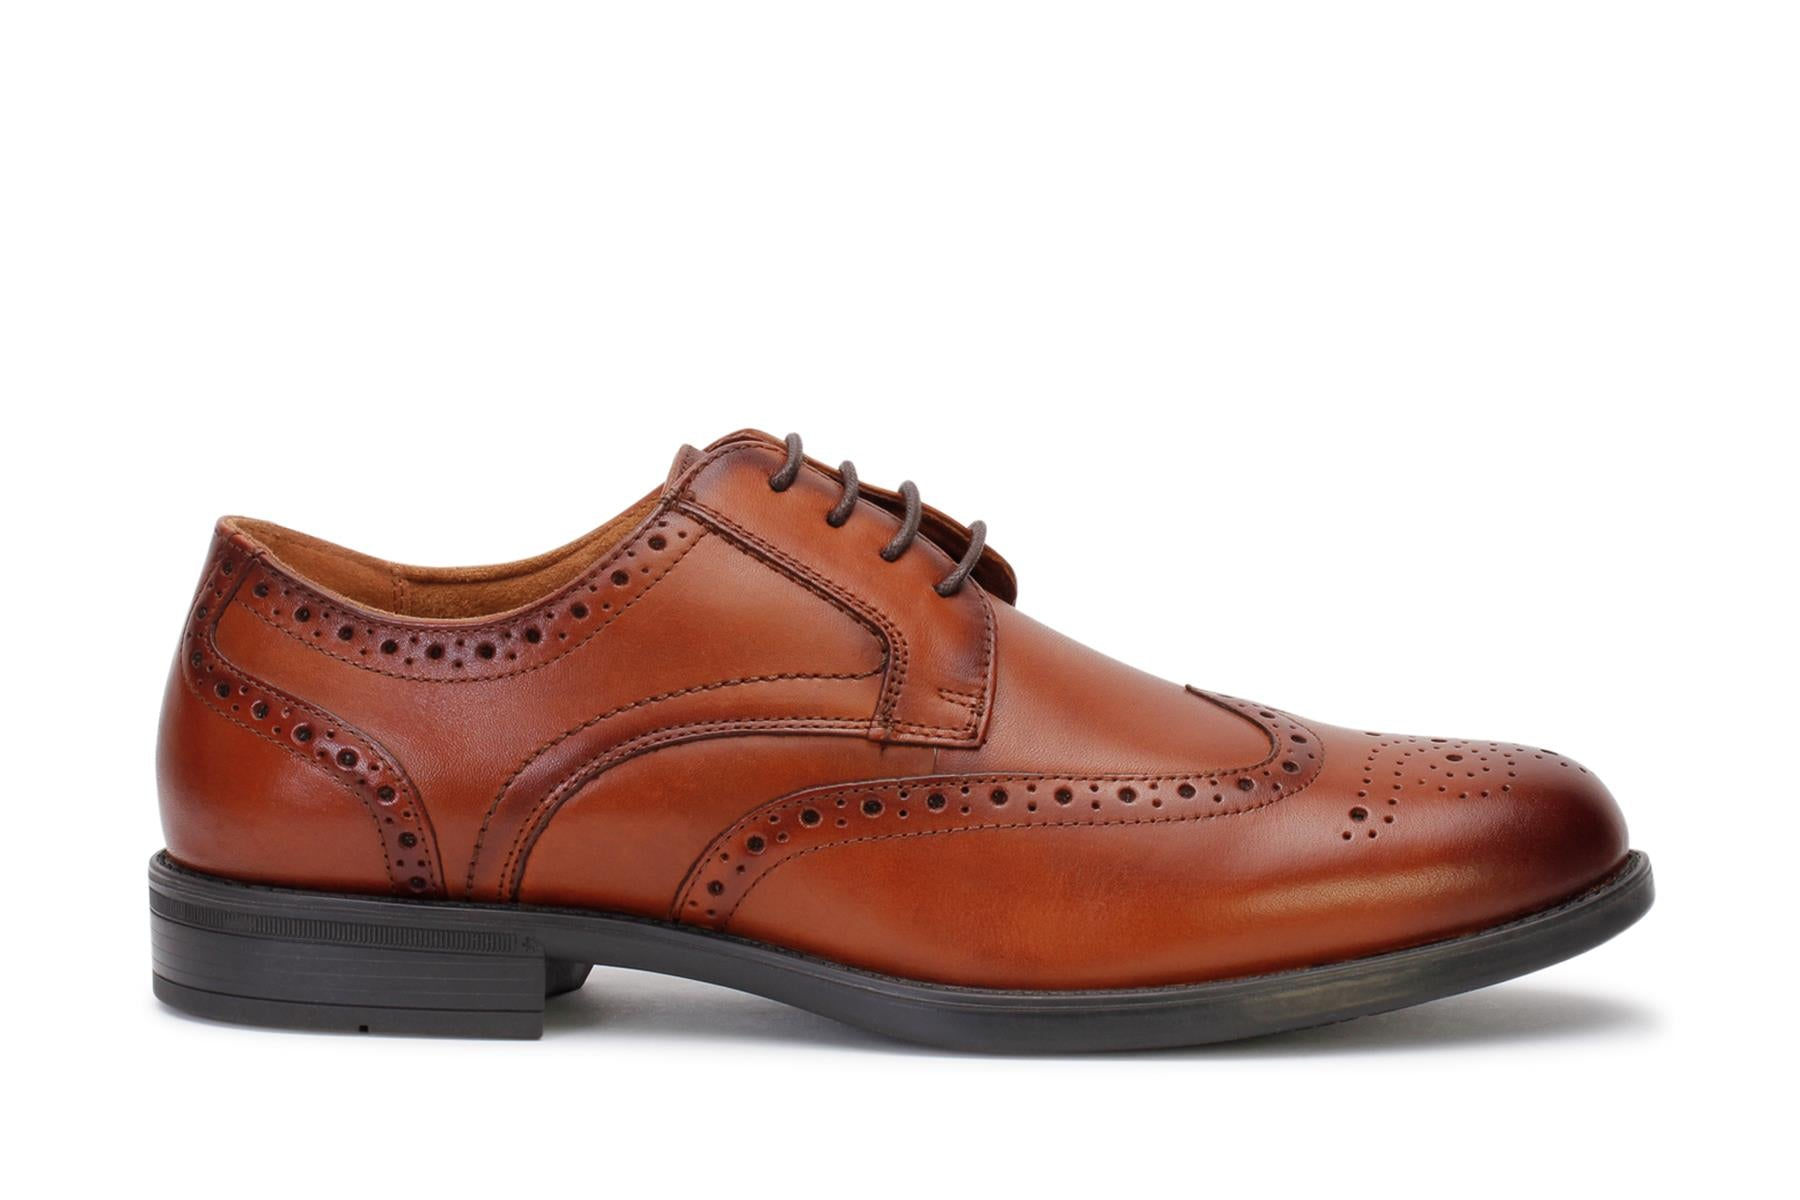 florsheim-mens-dress-shoes-midtown-wingtip-oxford-cognac-leather-main